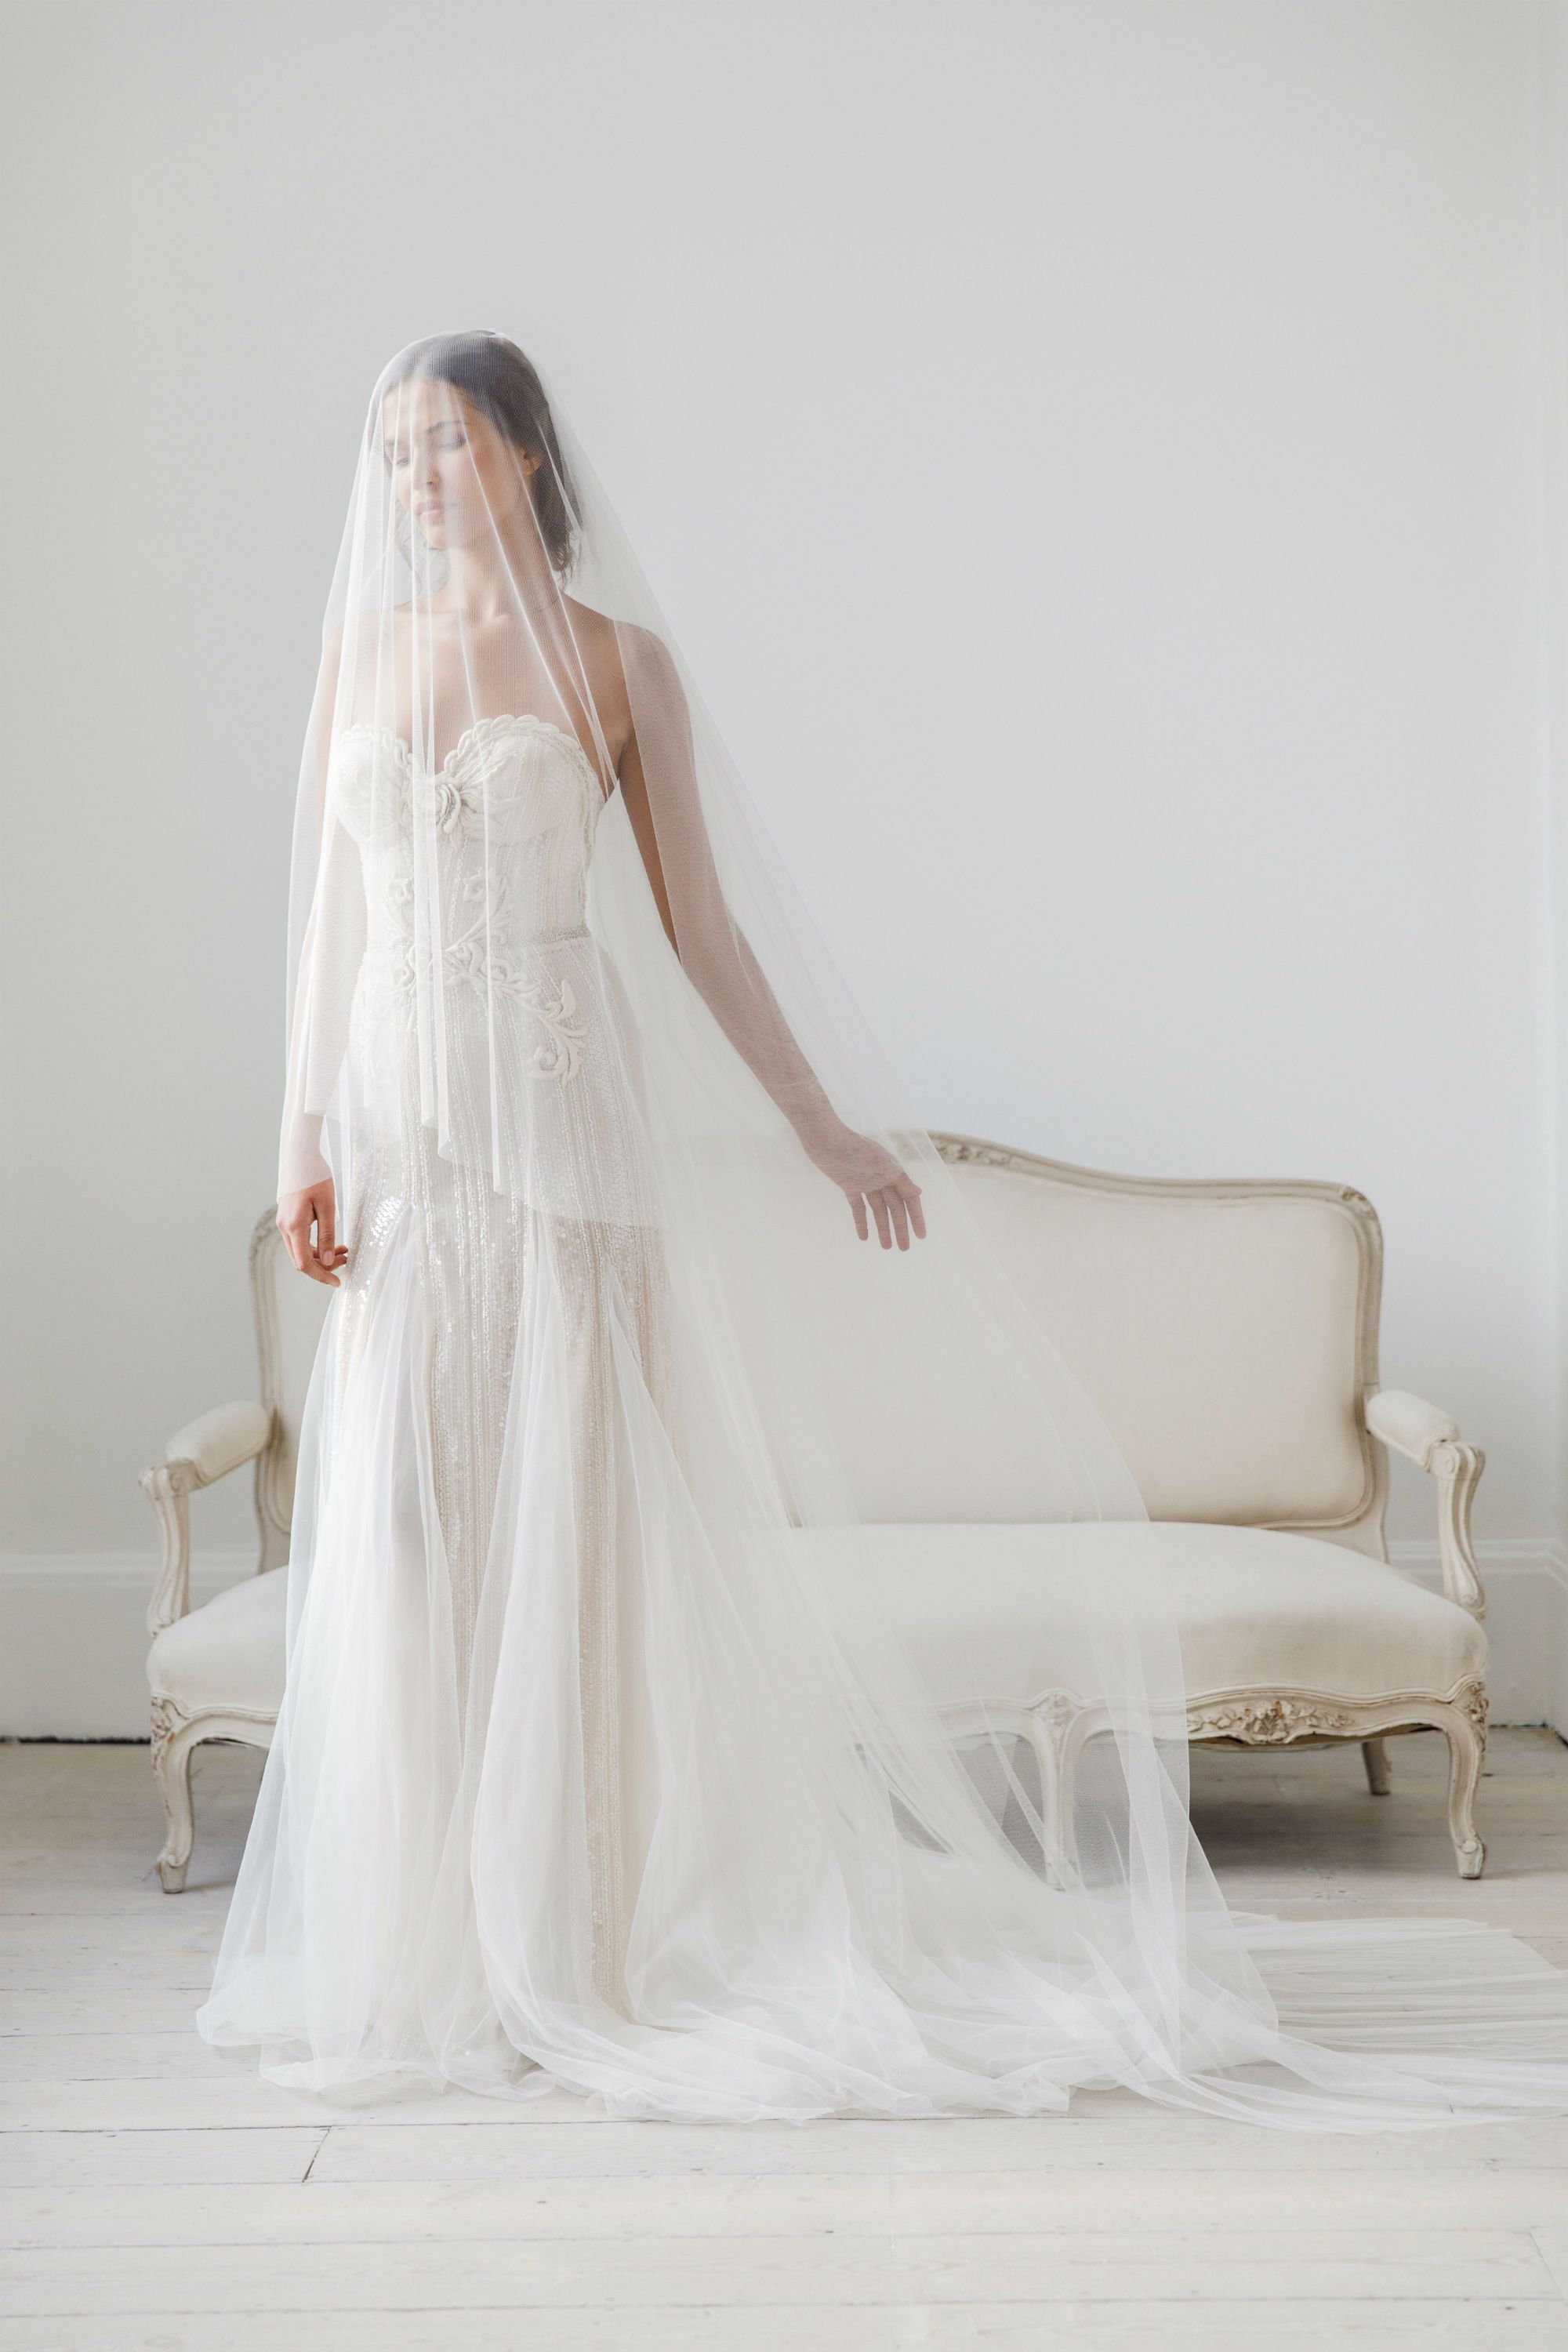 How to Choose the Right Wedding Veil